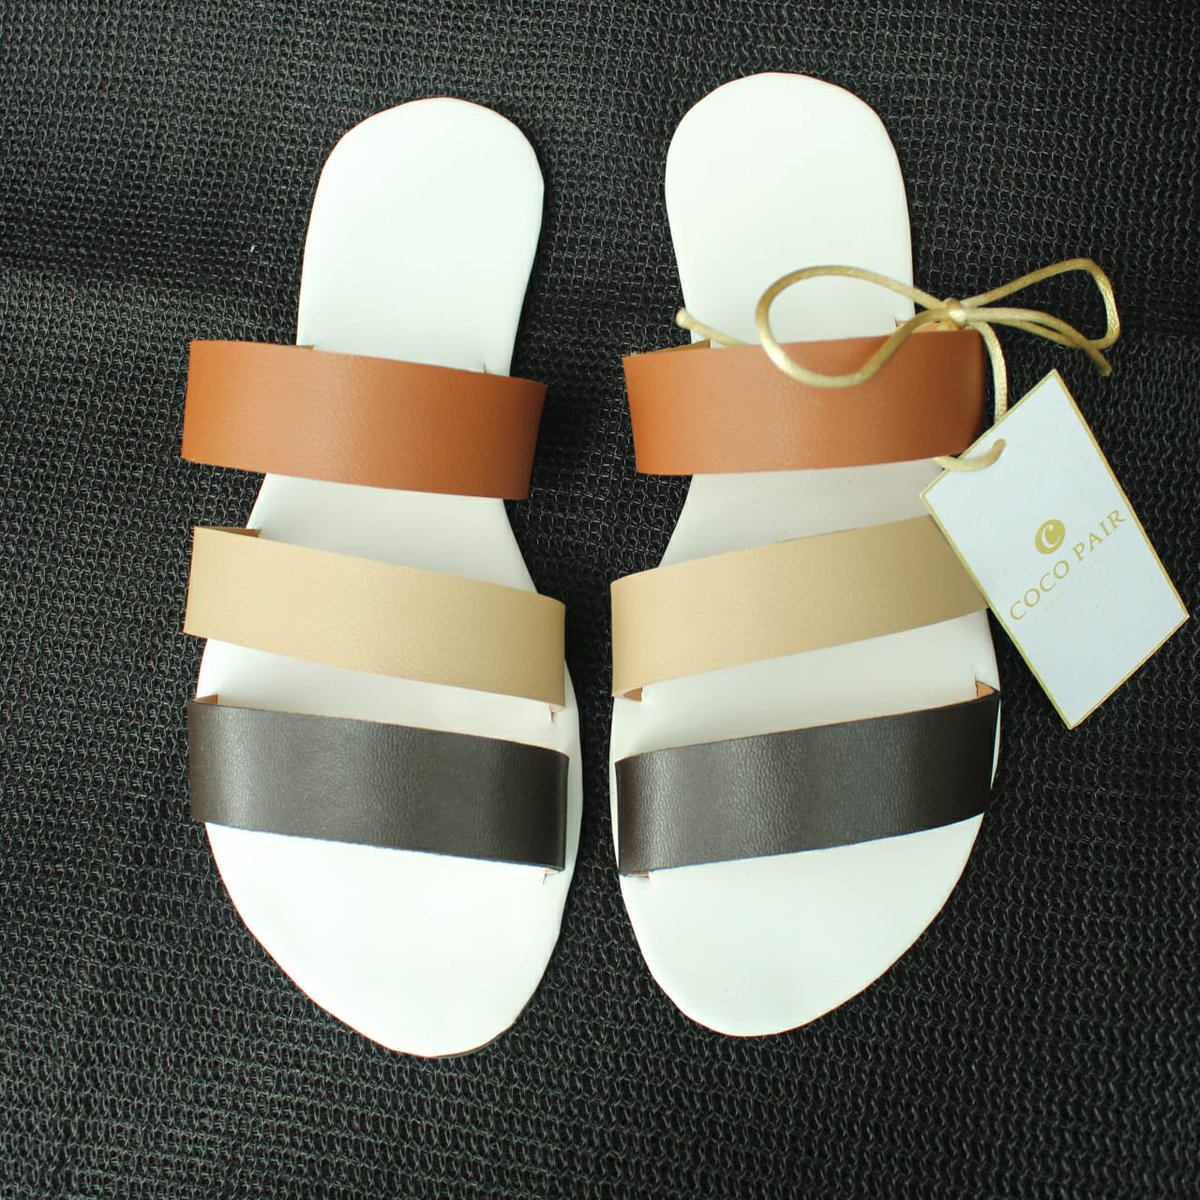 Just stocked ~ Coco pair three color slides ~  Let white sole and three different color straps to change your tomorrow's look!  Free delivery within 7 days.  #cocopair #srilankanfootwear #srilanka #slippers #sandals #footwear #threecolorstraps #fashion